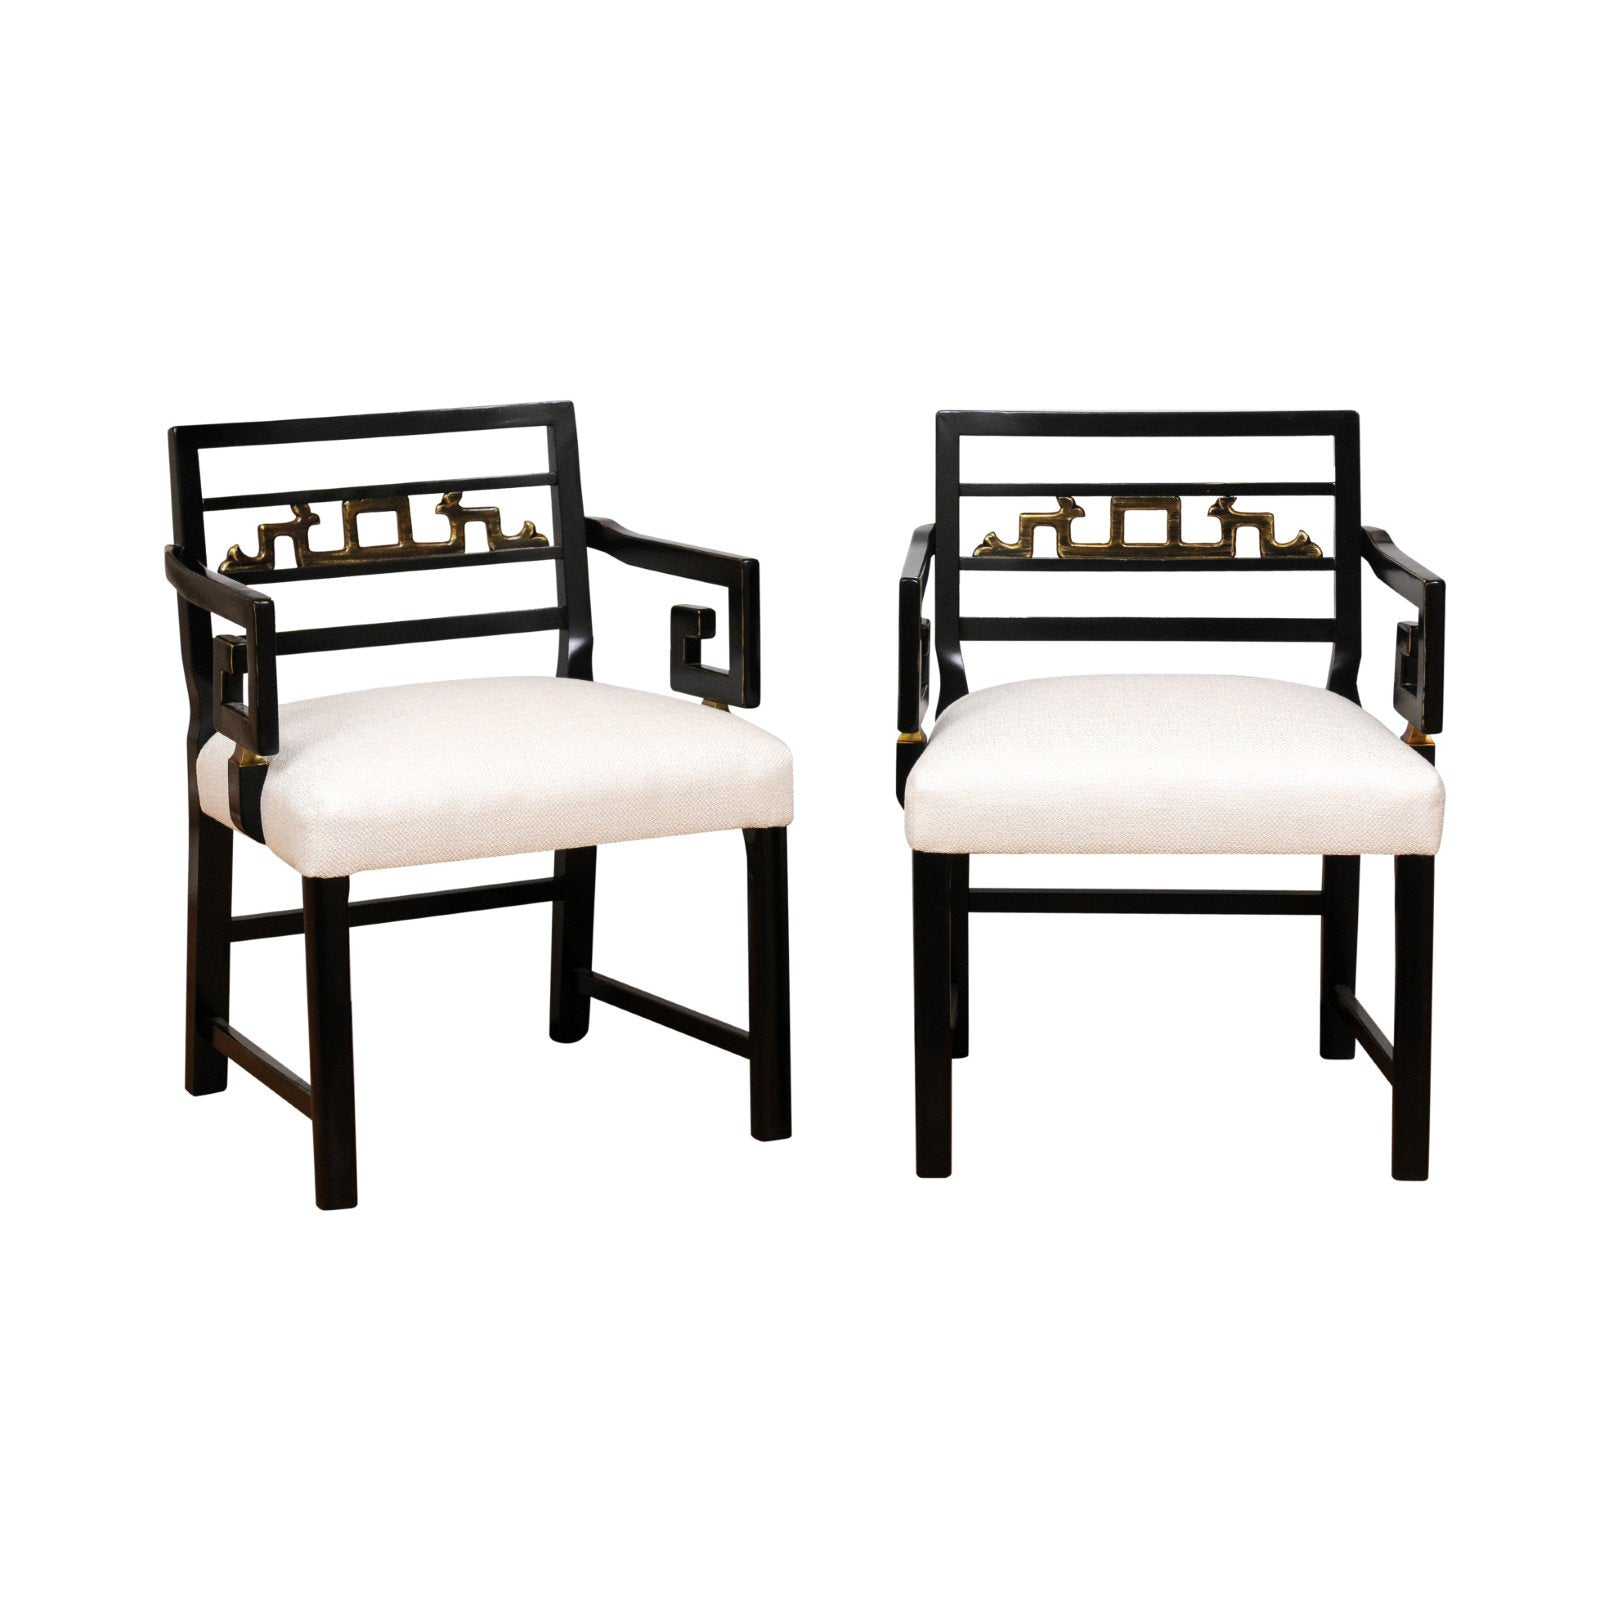 Exquisite Pair of Modern Chinoiserie Greek Key Armchairs by Baker, circa 1960